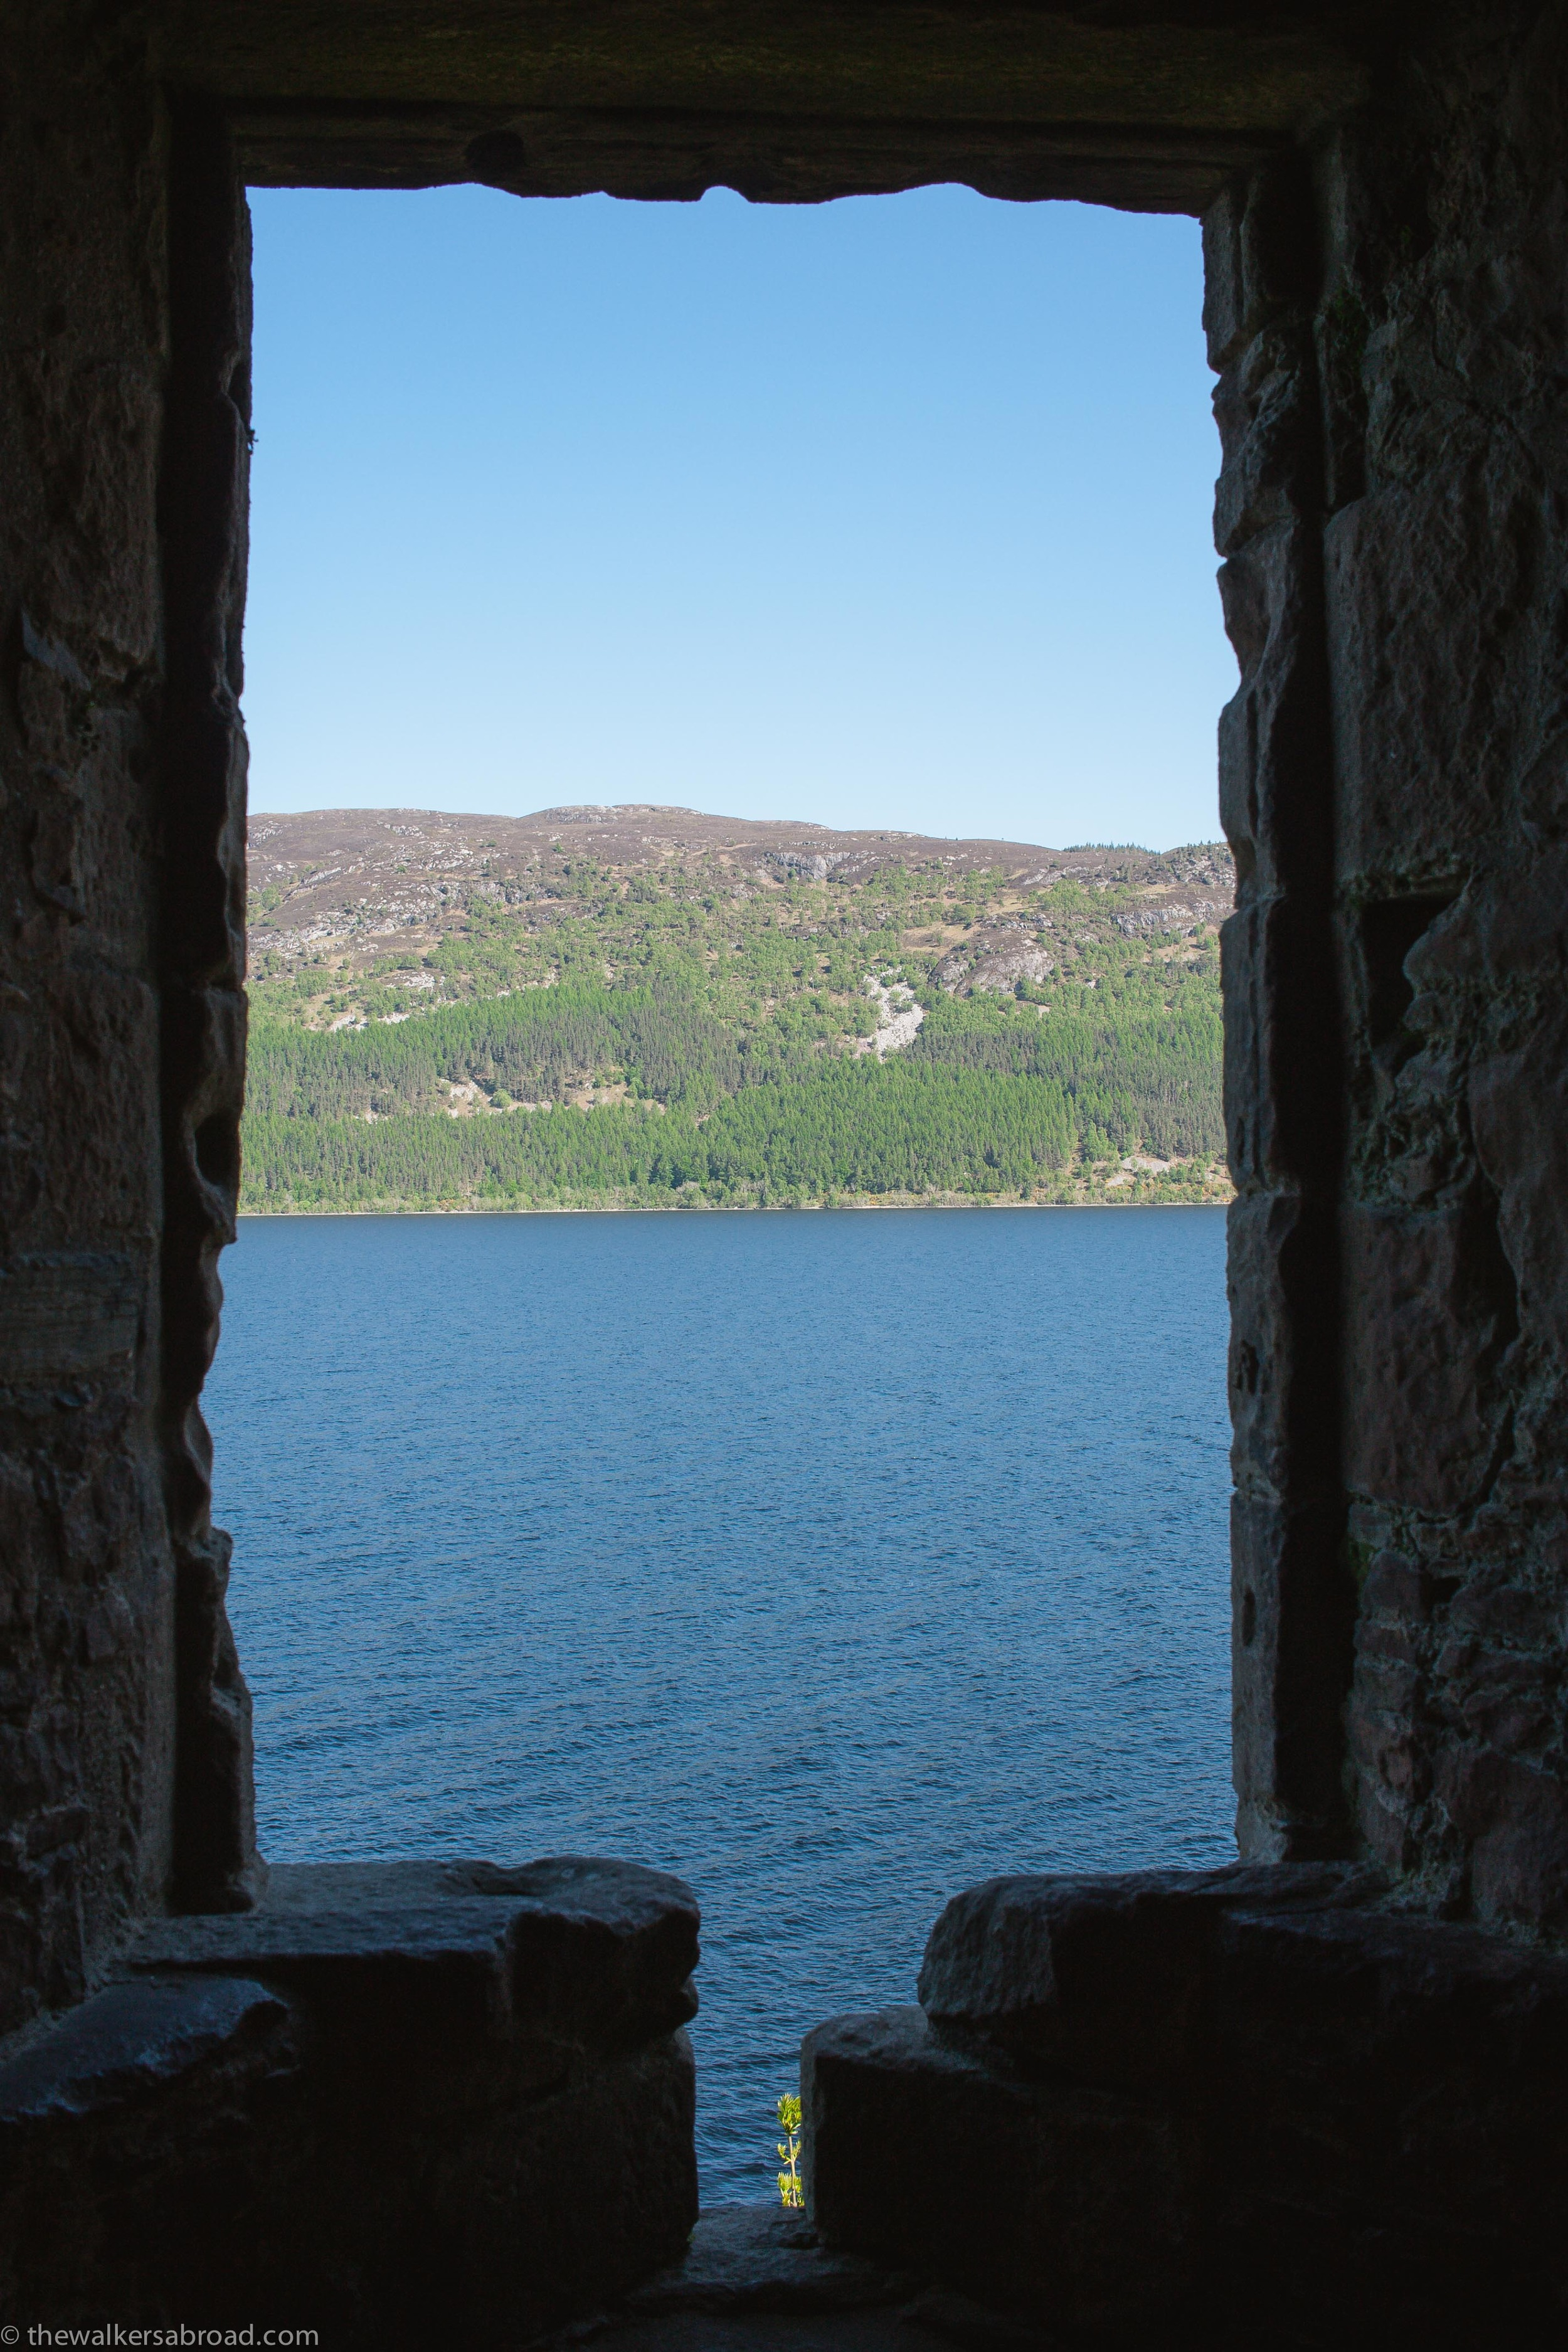 View through a window in Grant Tower.